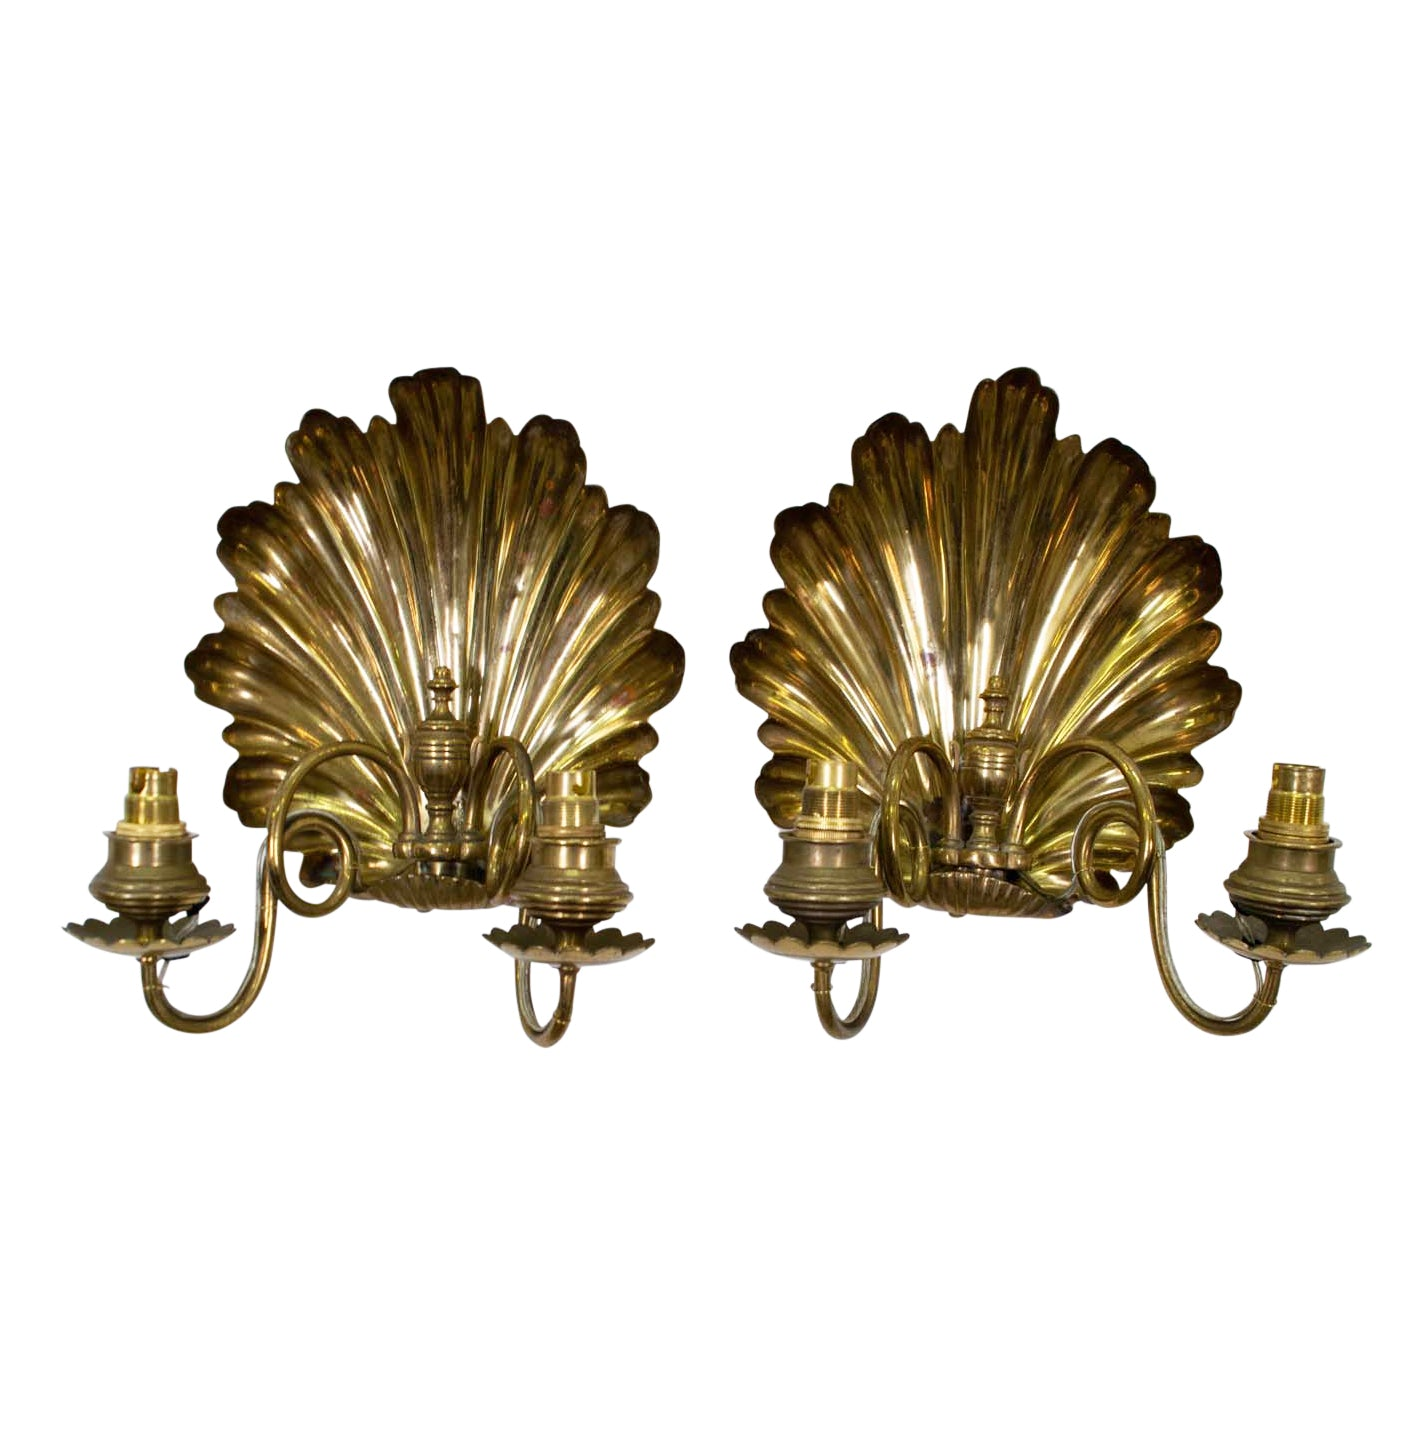 Pair of 19th Century English Shell Sconces